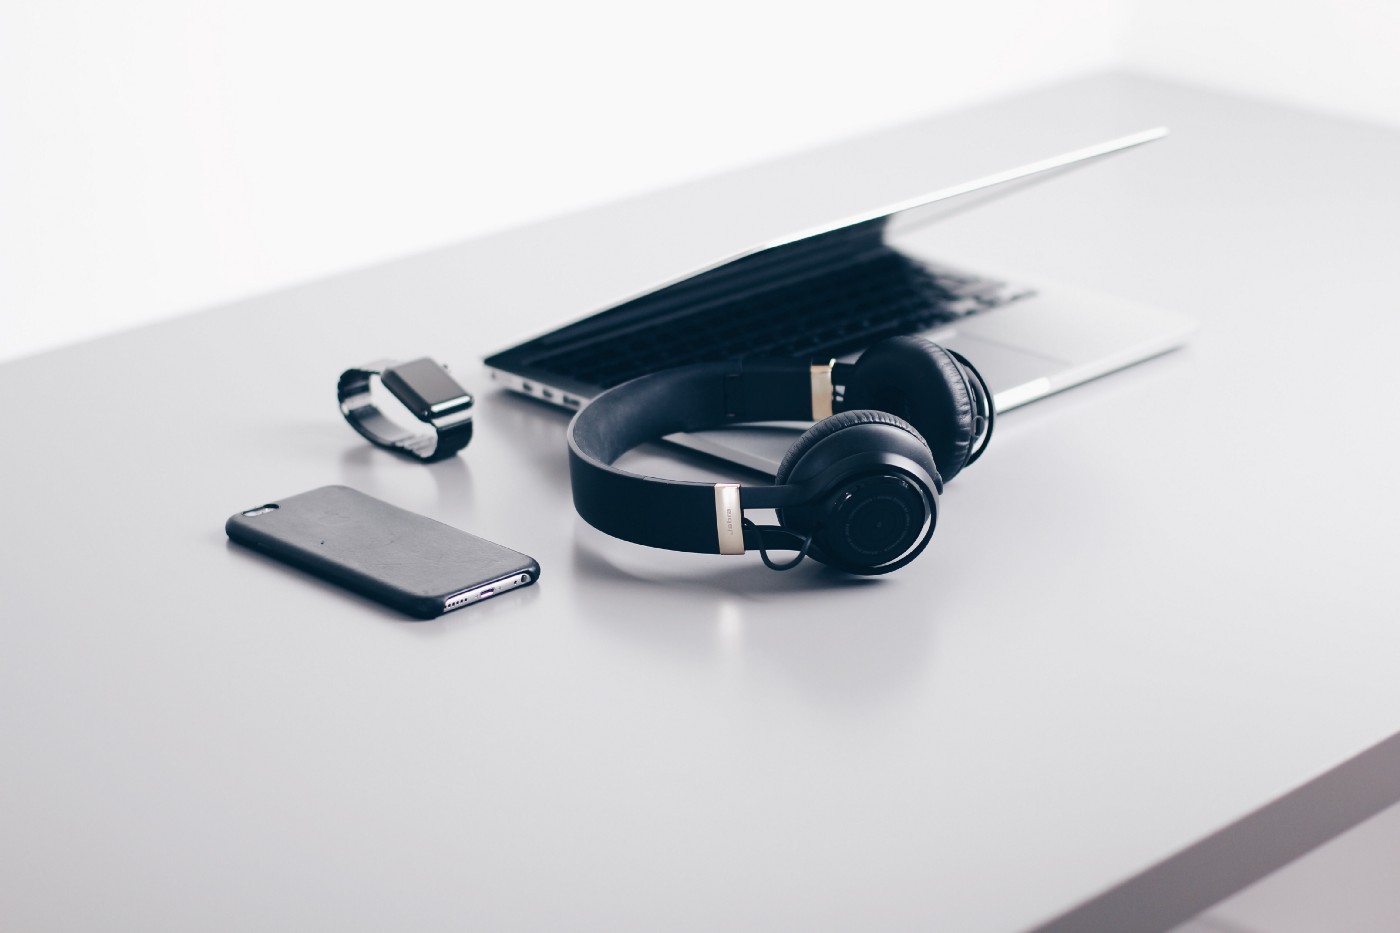 A laptop, a mobile phone, a smartwatch and a pair of headphones